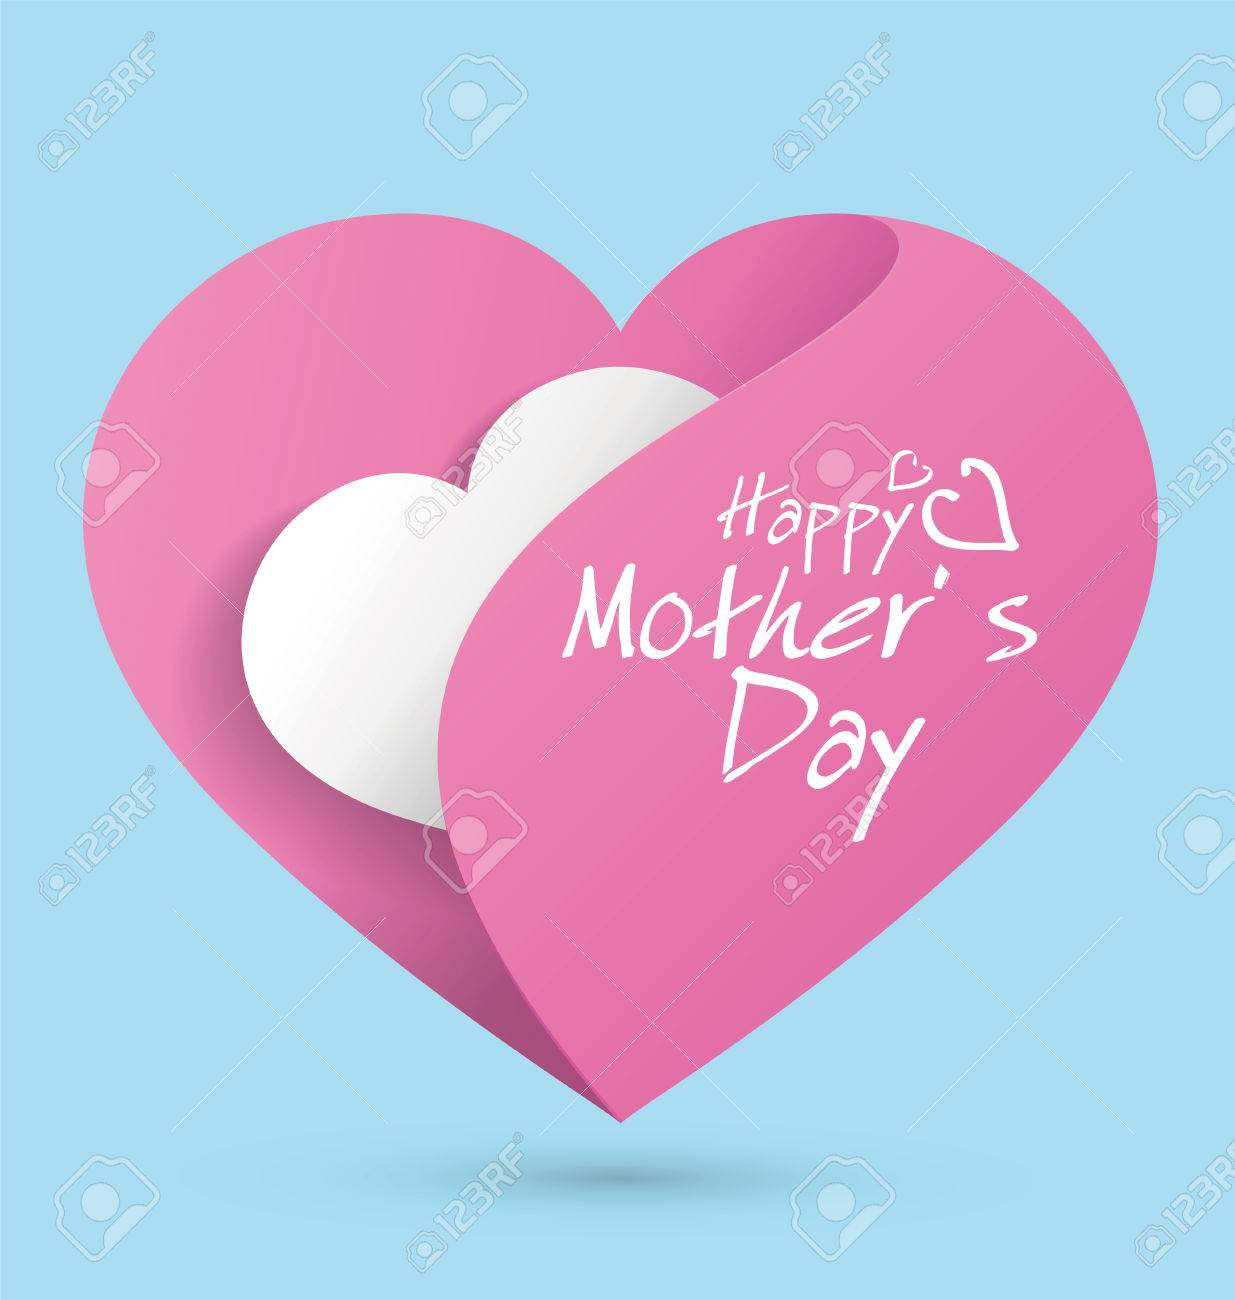 mother u0027s day themed heart shaped graphic design royalty free